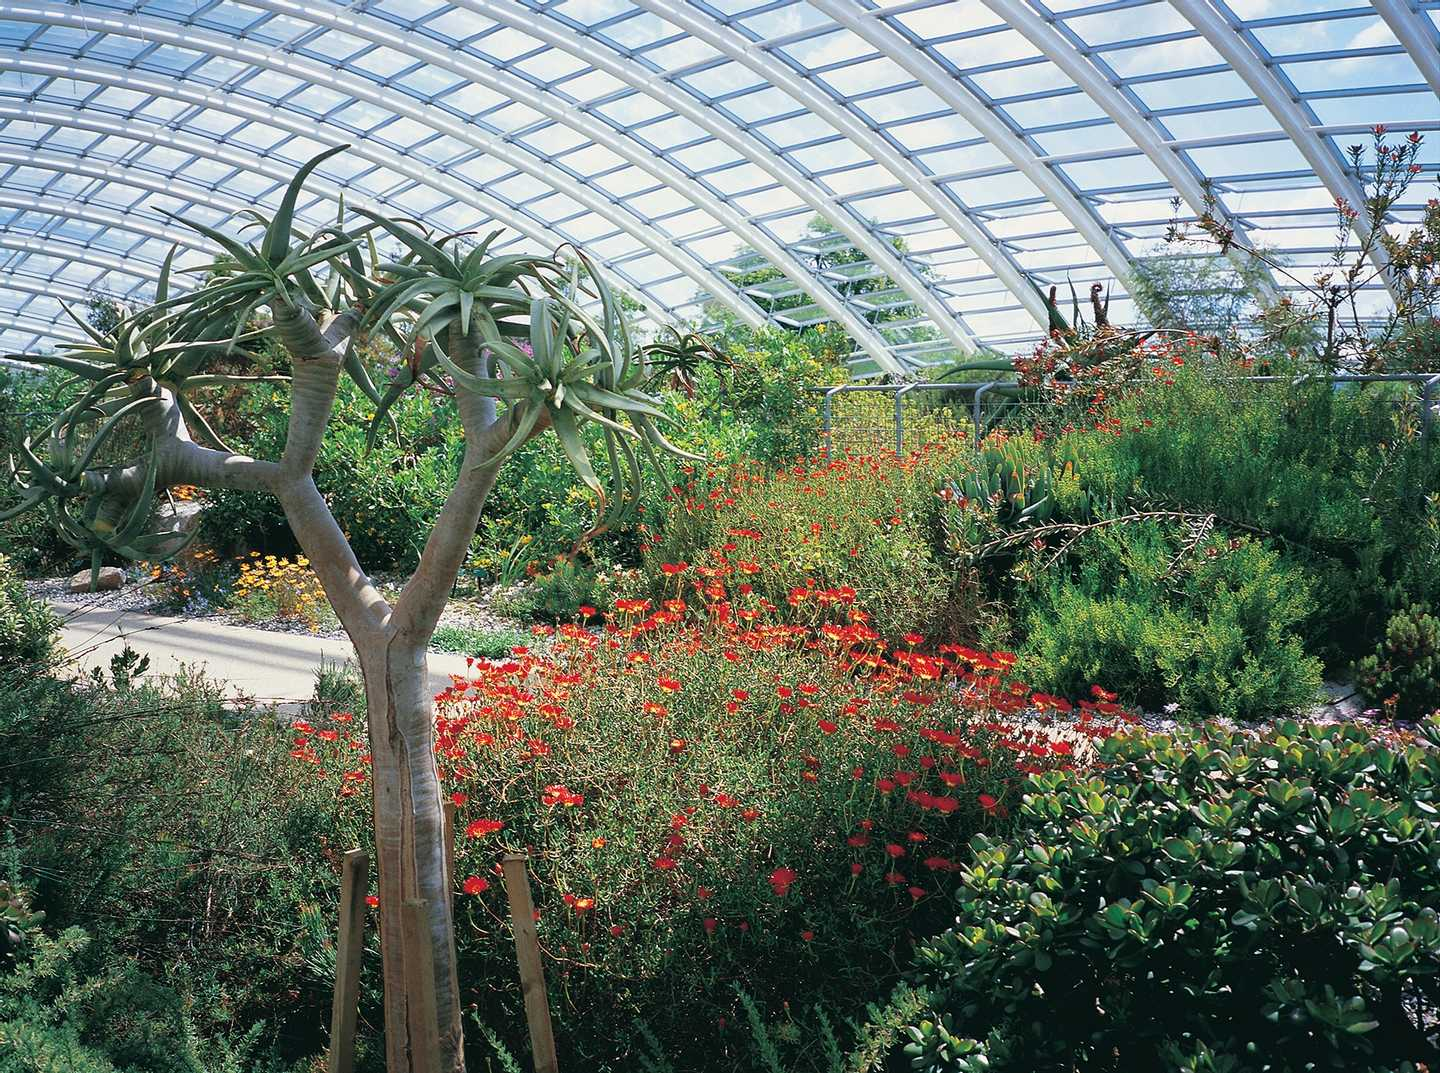 National Botanic Garden of Wales